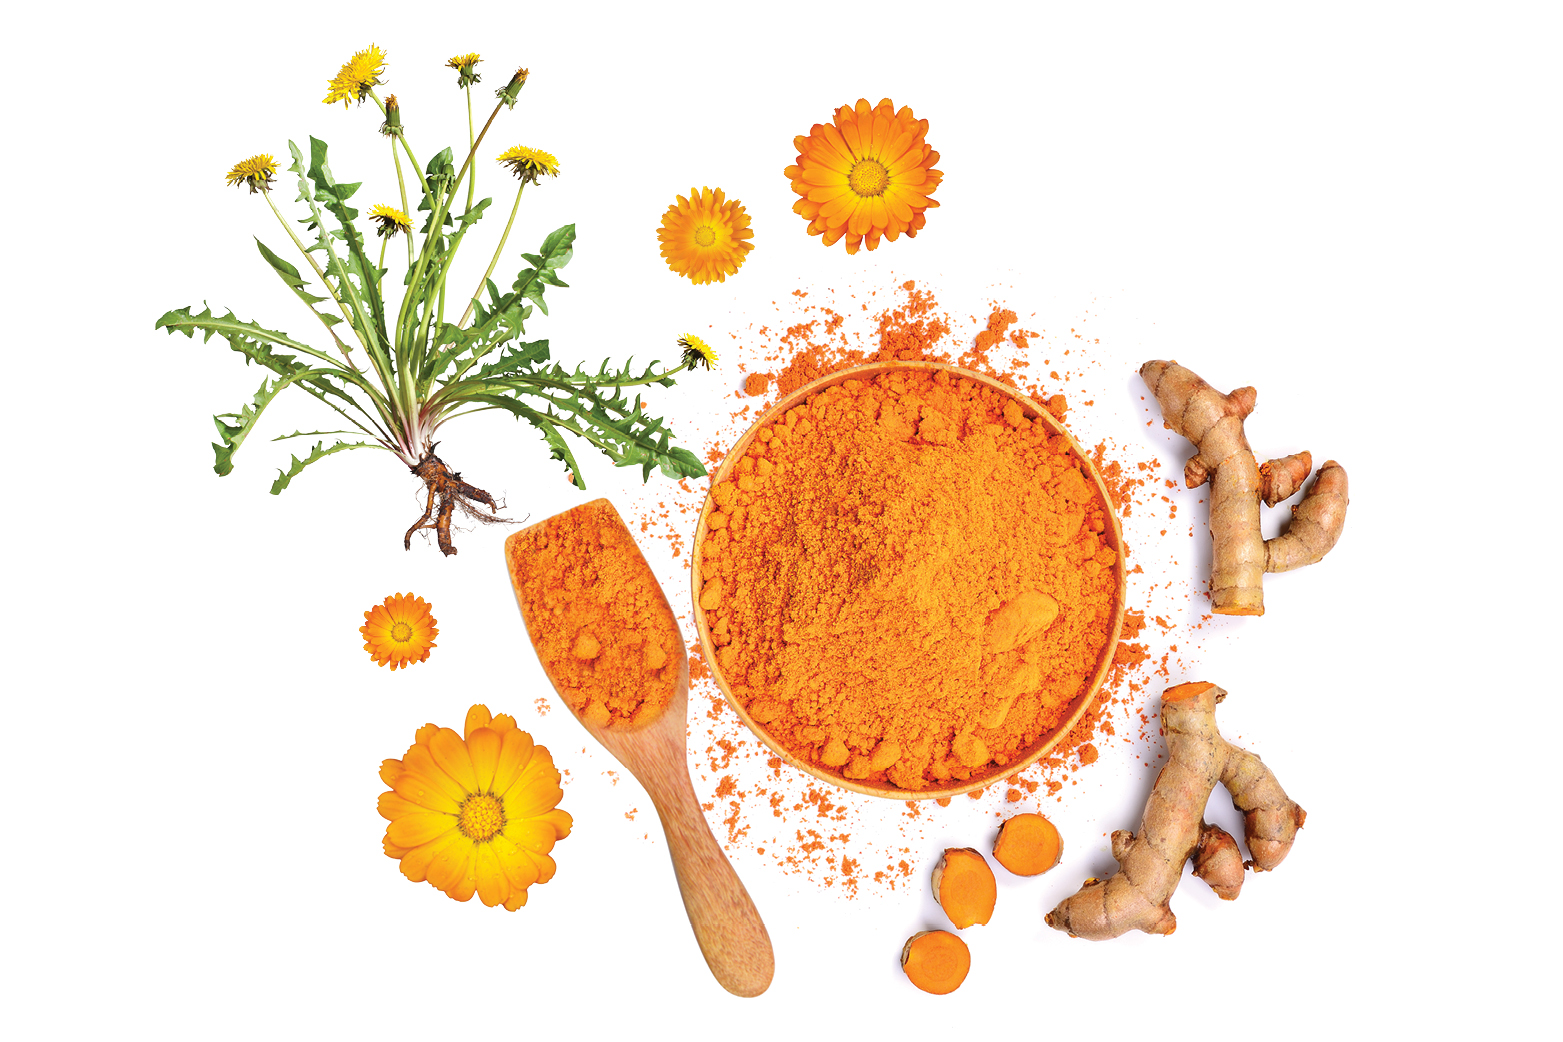 An orange powder in a bowl and wooden spoon arranged out on a white background surrounded by ginger and flowers